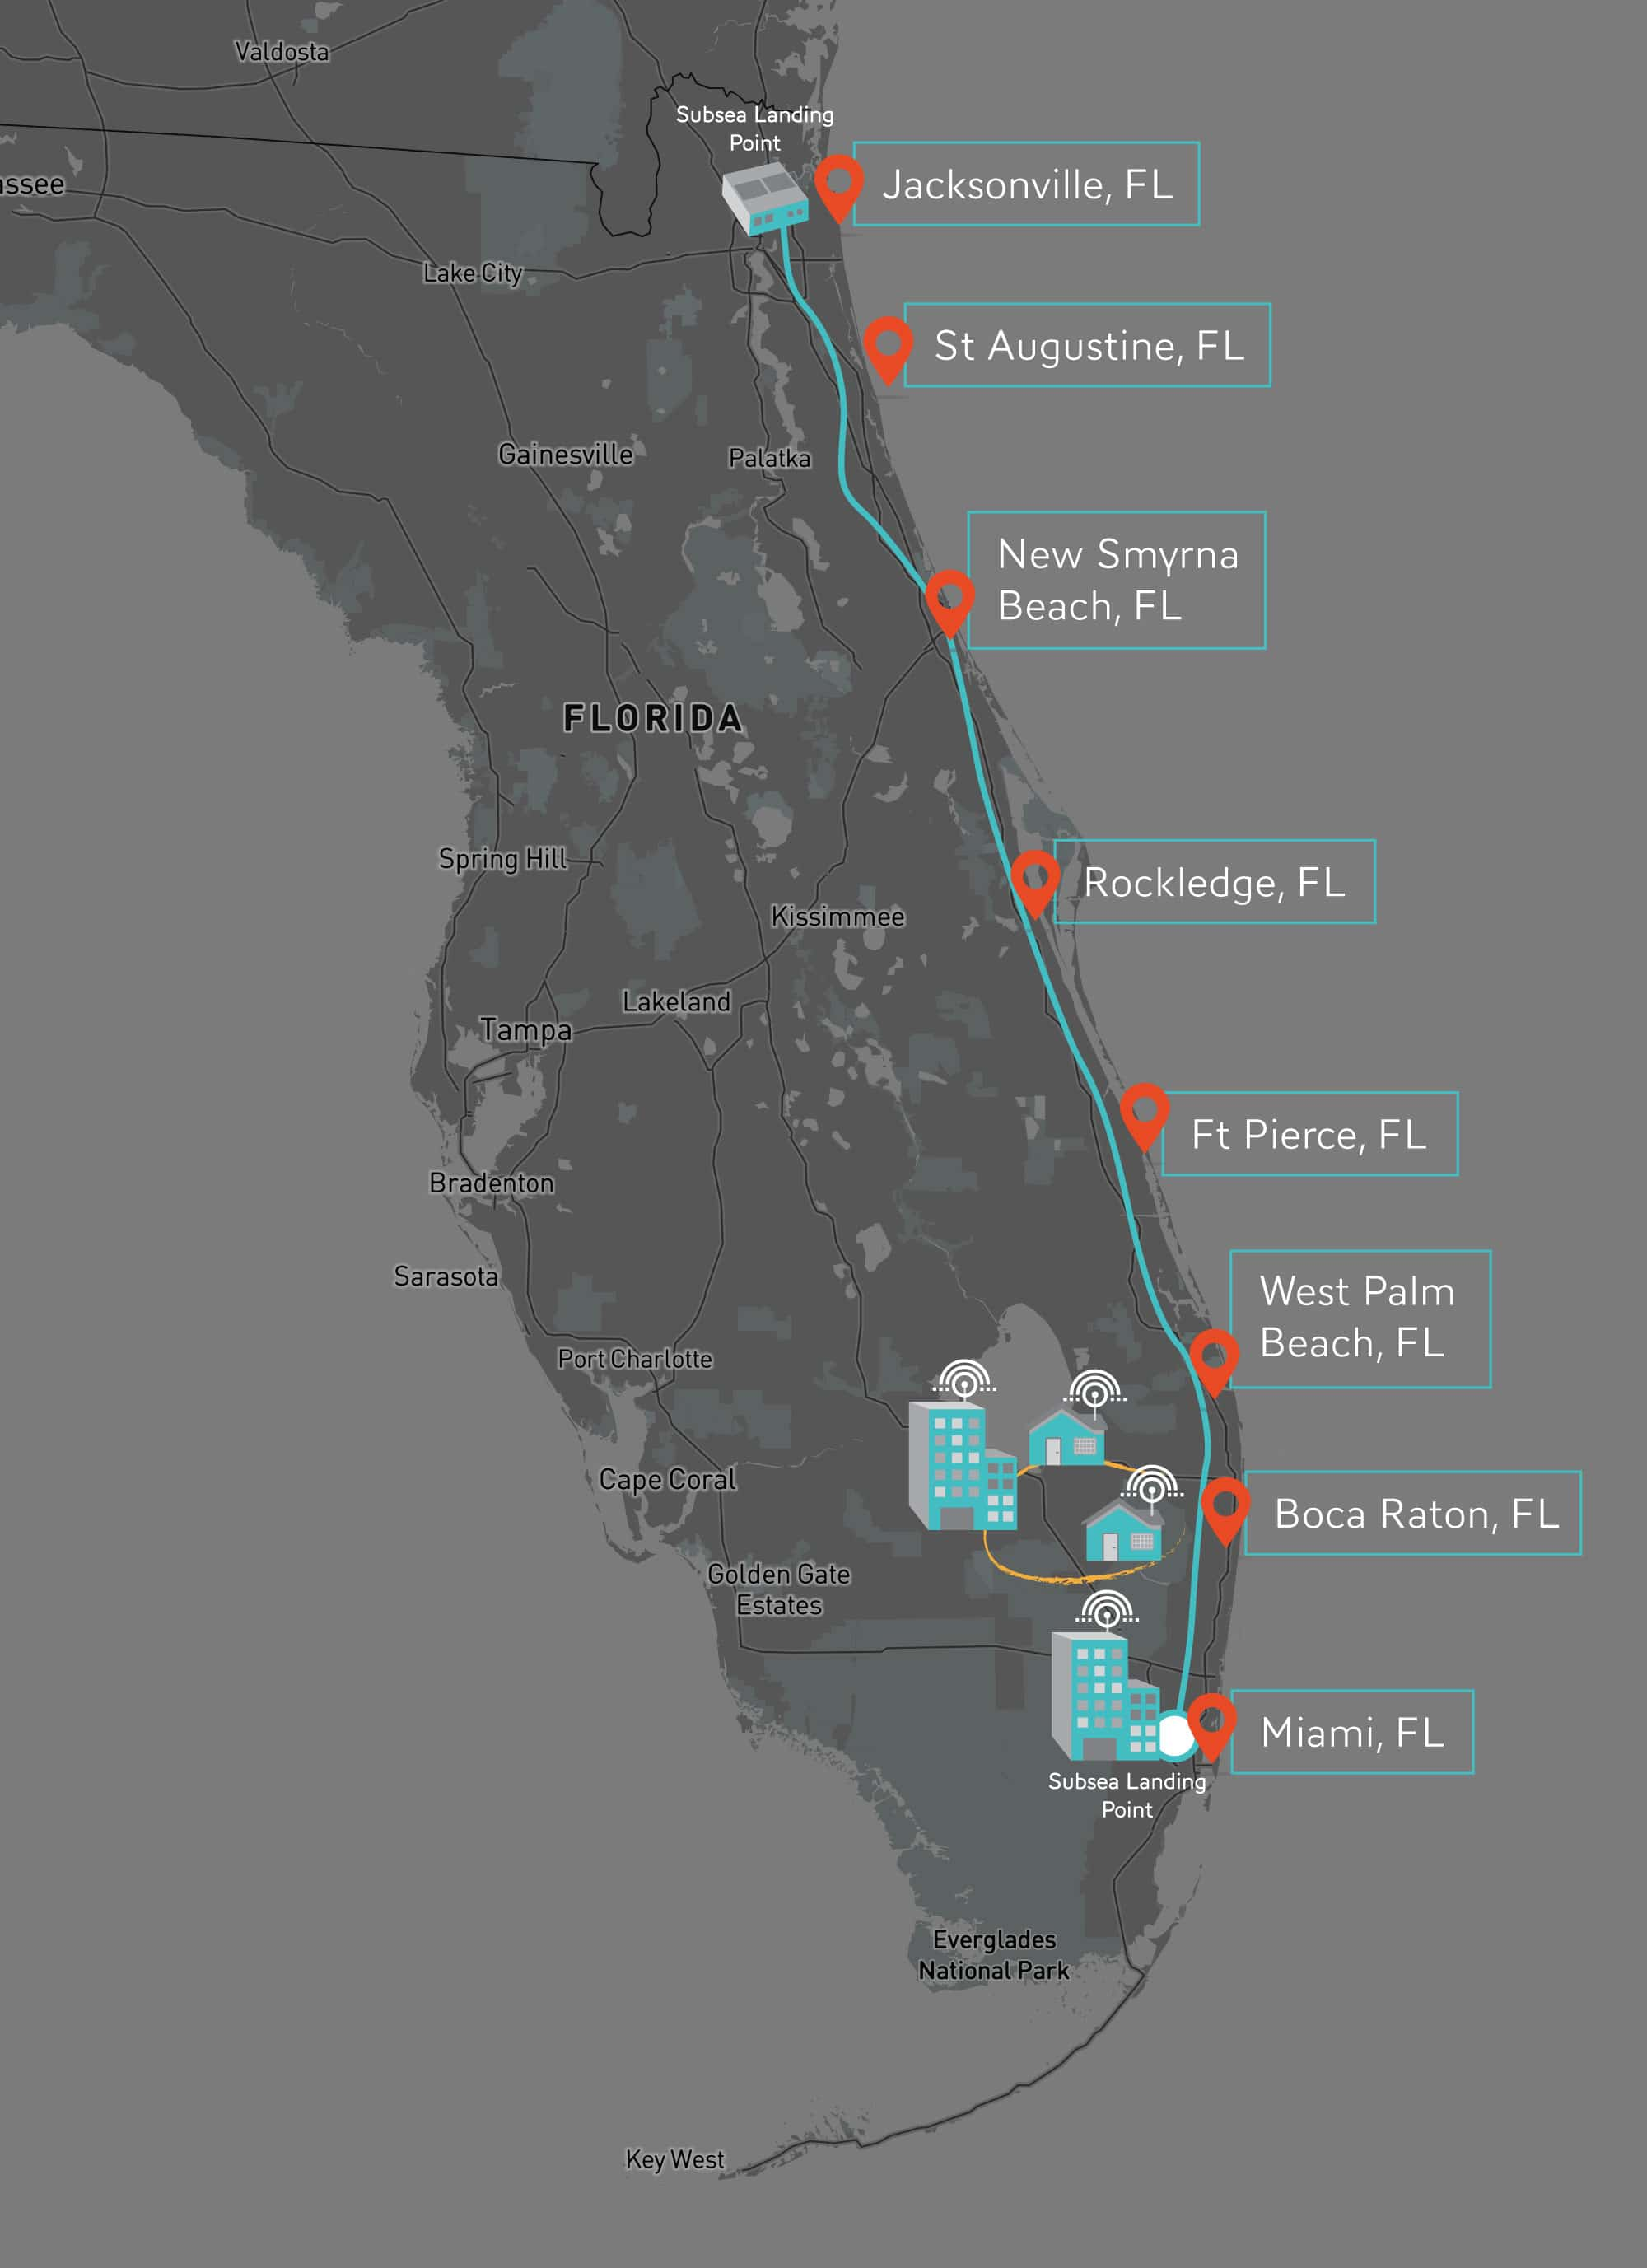 Miami through Jacksonville Fiber Network